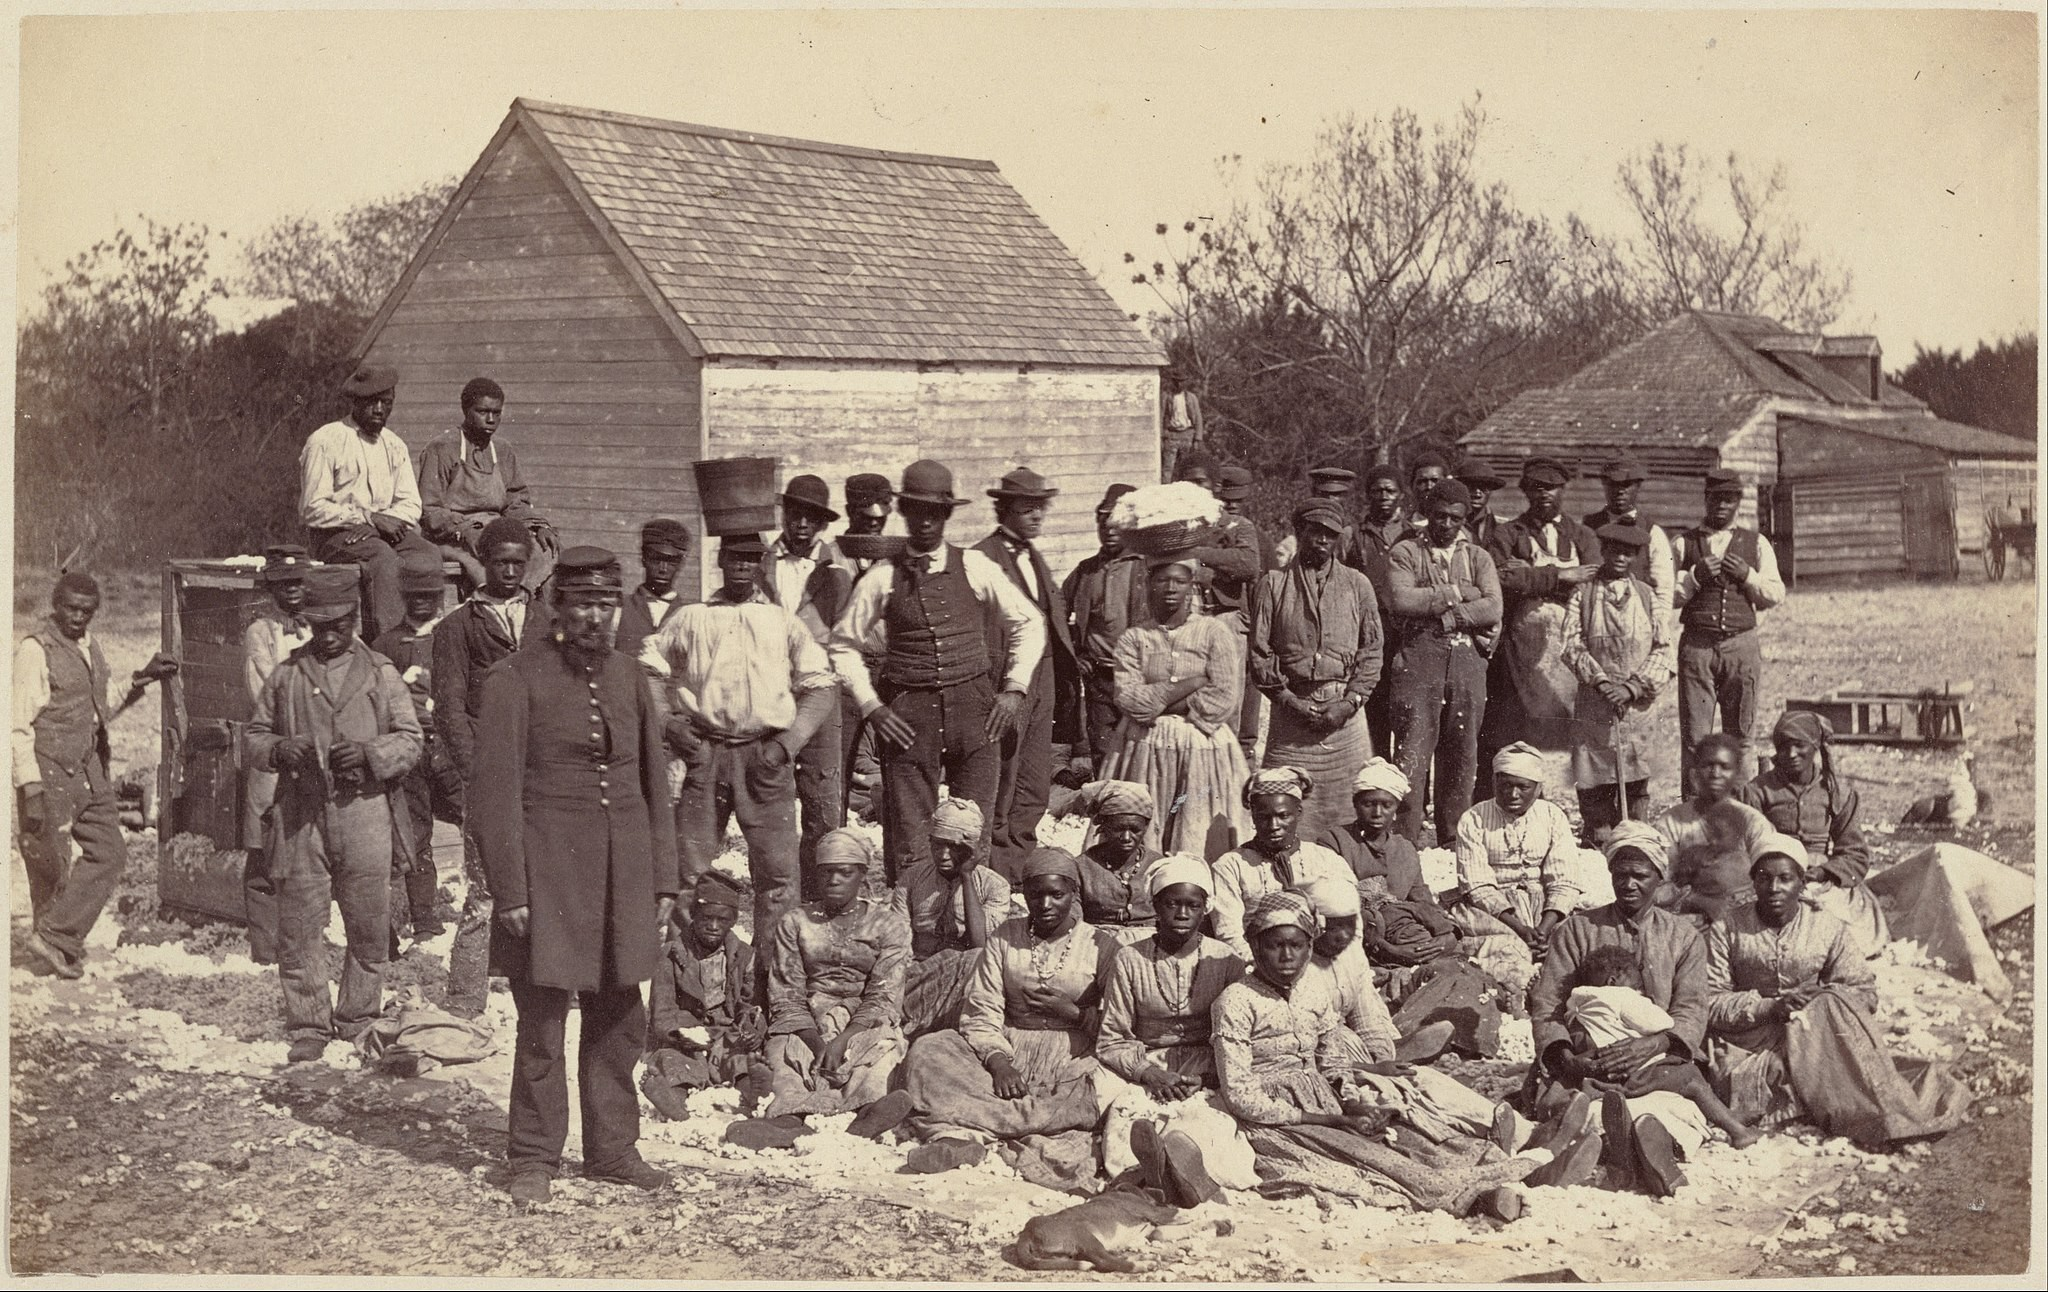 Dozens of slaves owned by an American military general posed outside a wooden house